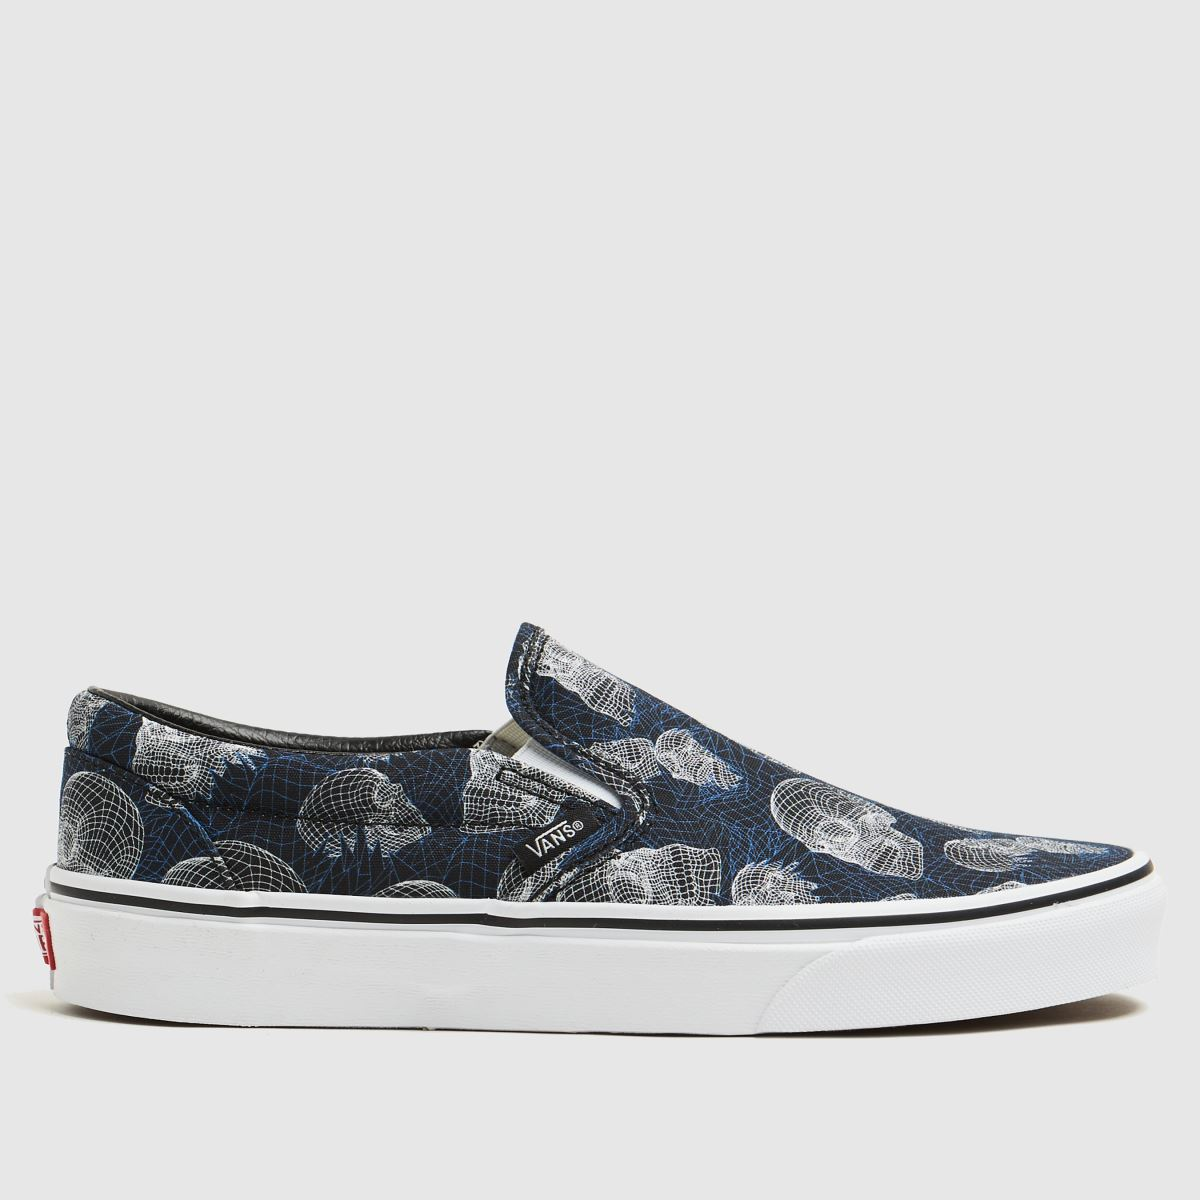 Vans Black And Blue Classic Slip-on Trainers